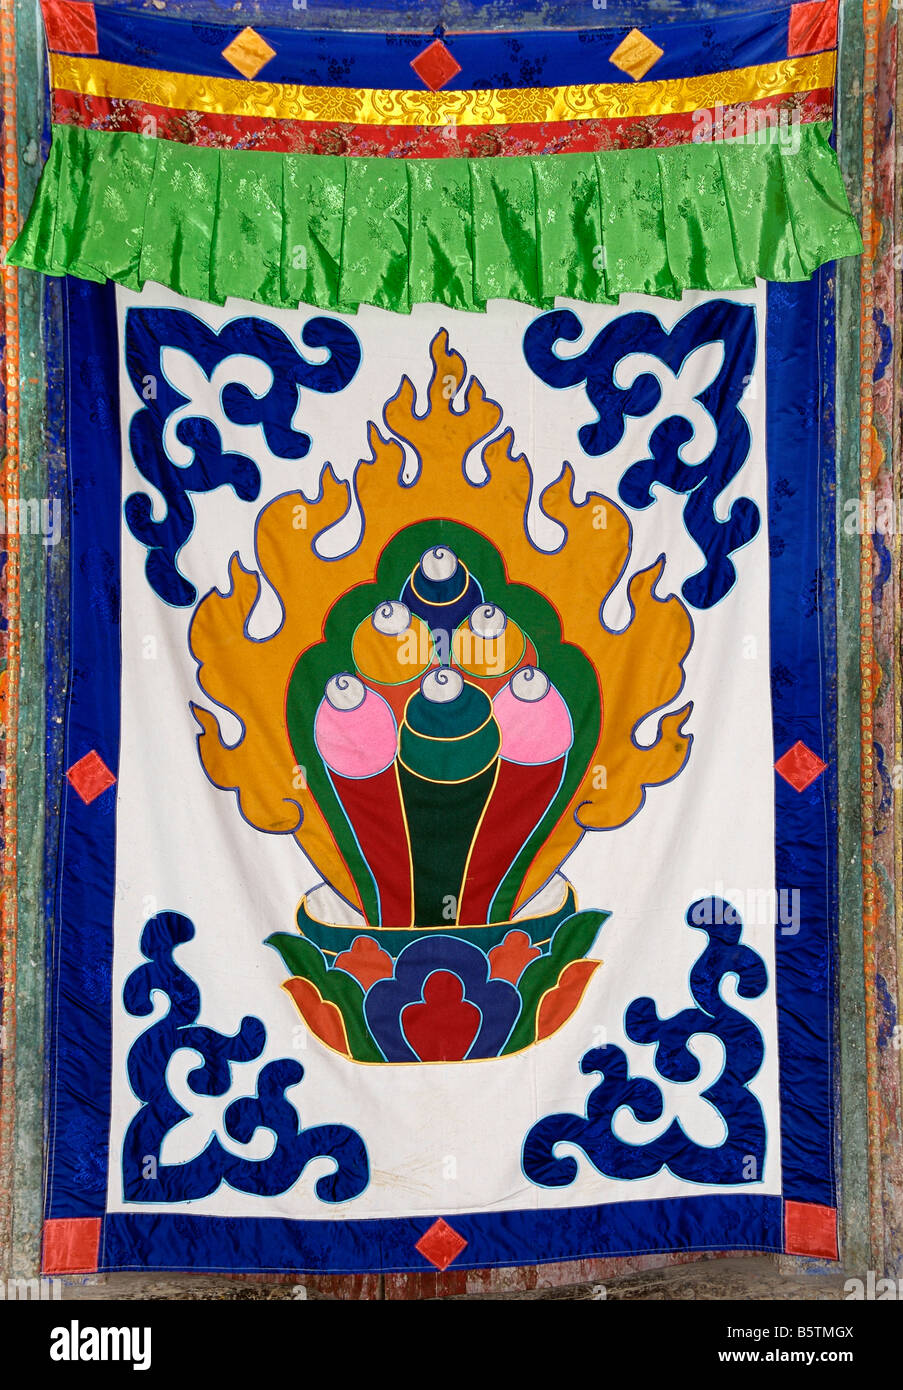 Buddhist textile hangings for sale at  Drepung monastery, Lhasa, Tibet - Stock Image